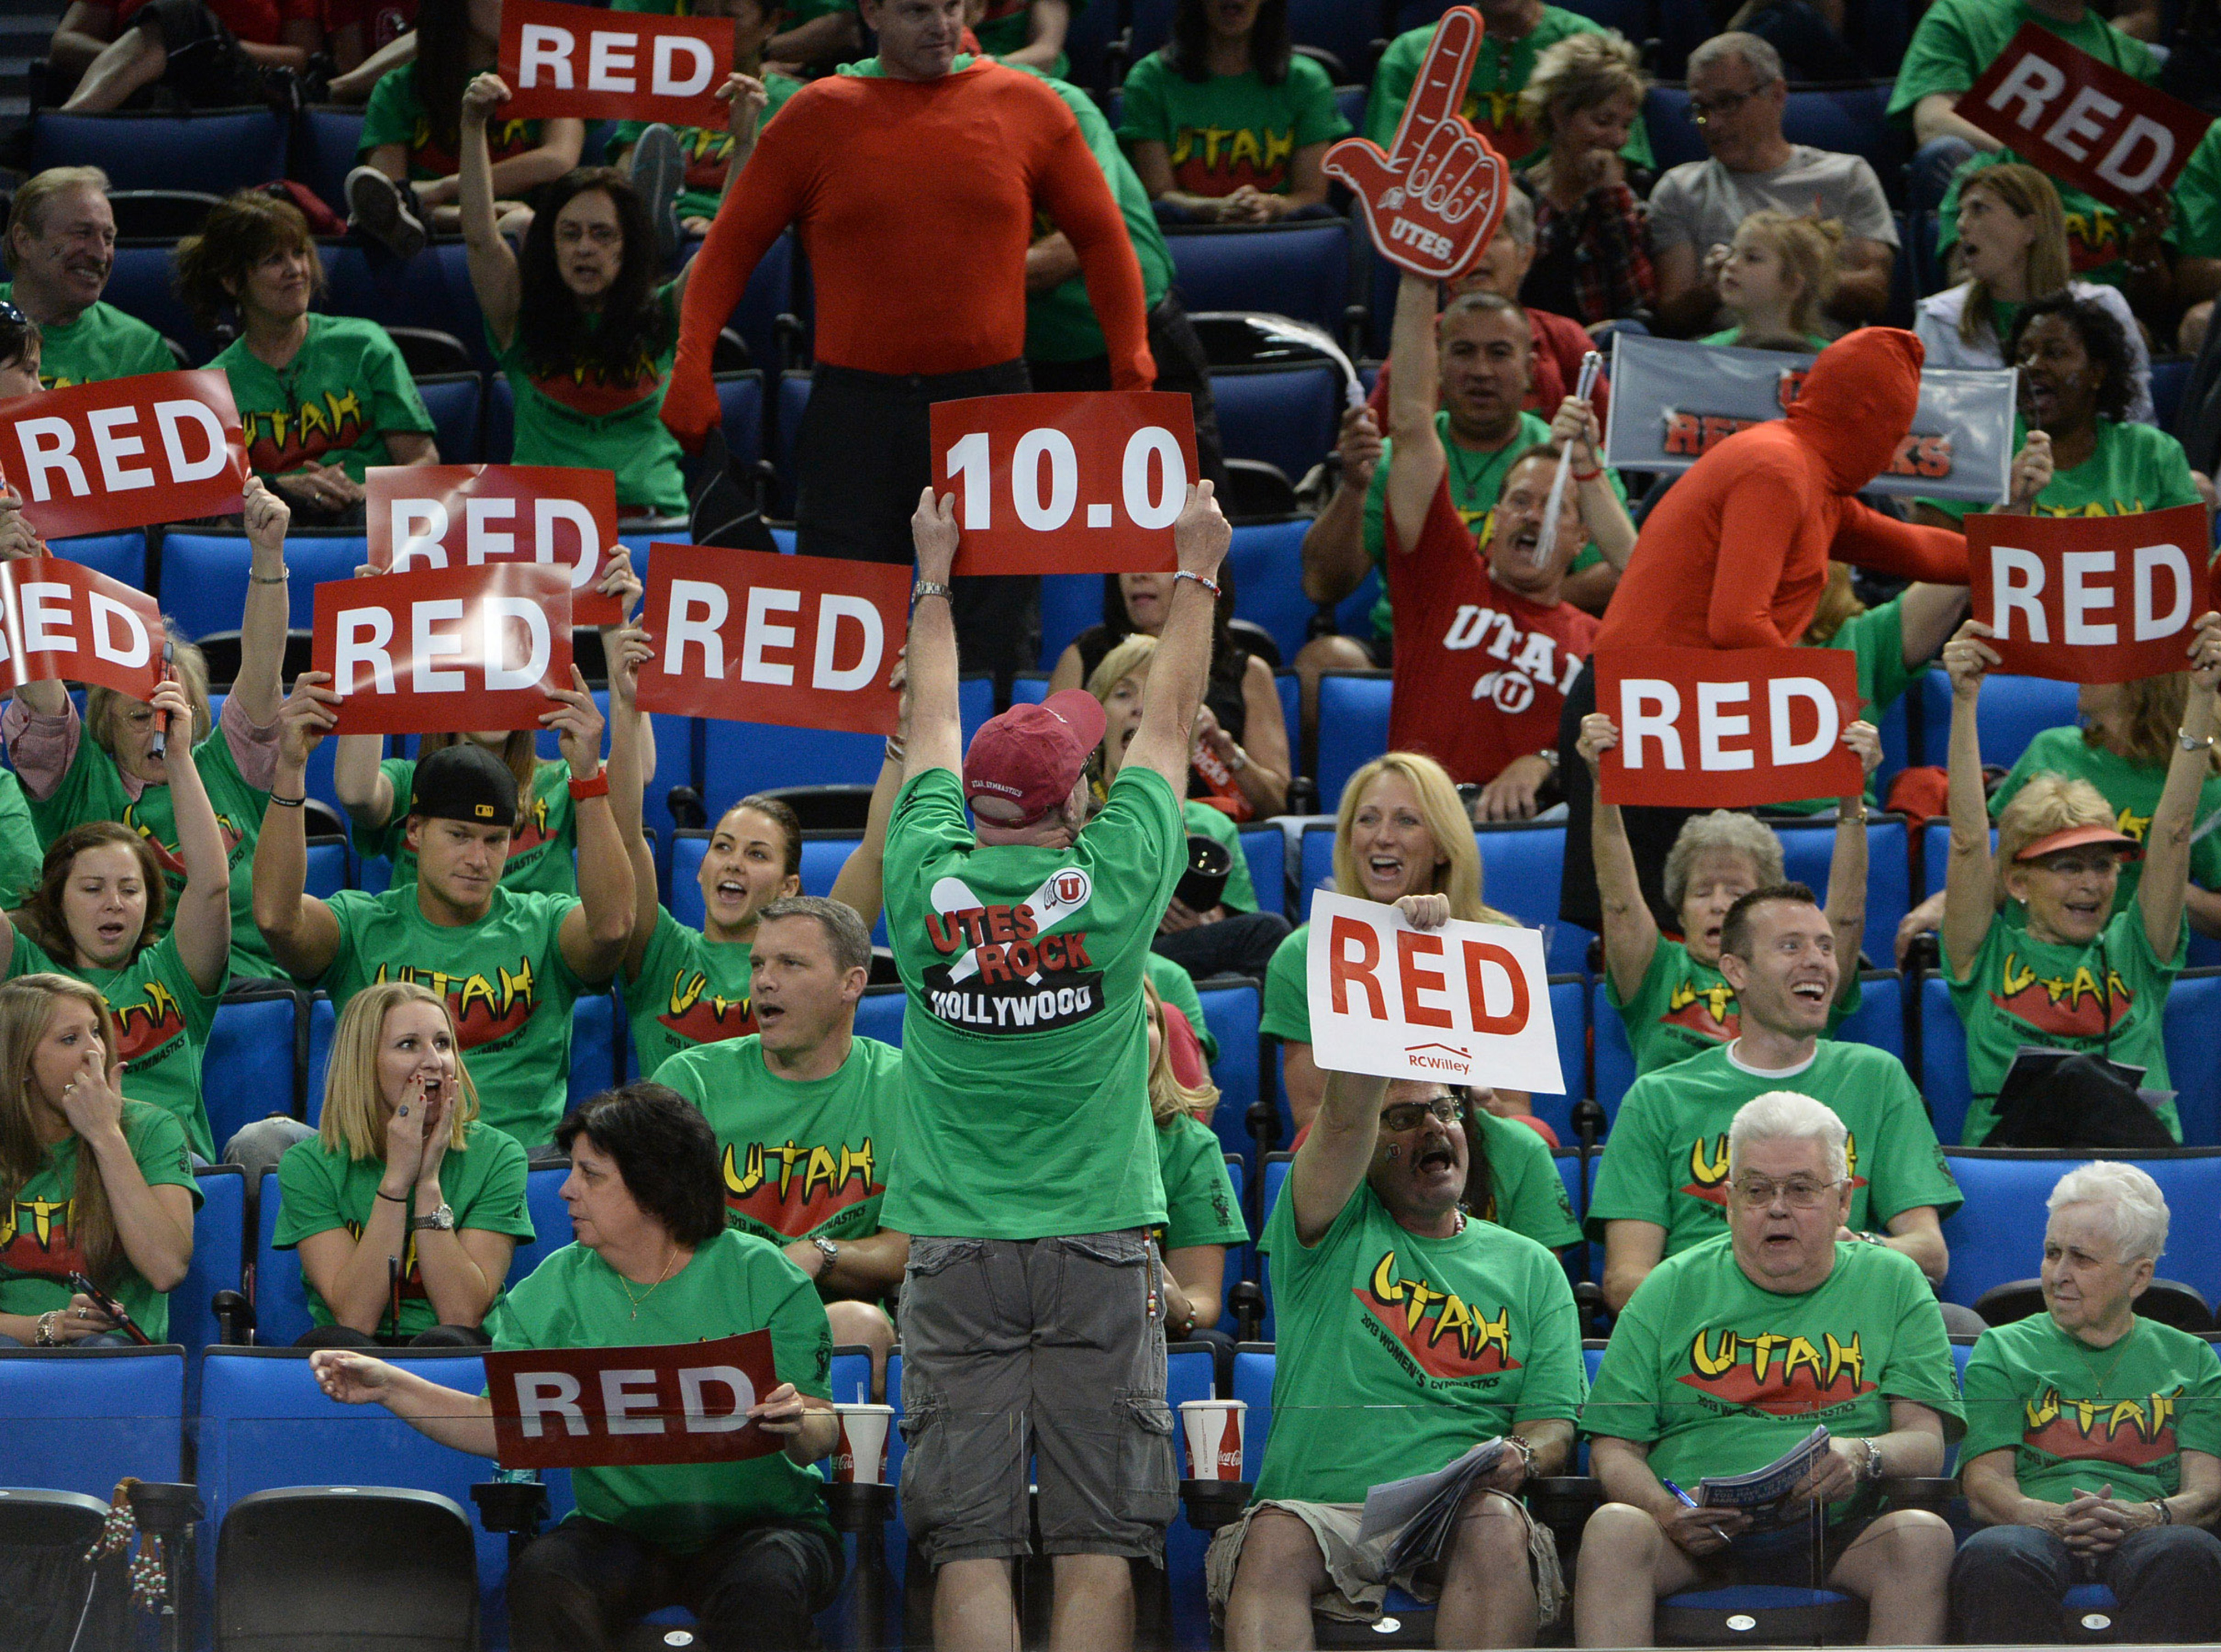 Utah fans will be cheering the defending Pac-12 champions in 2015, but it will be the freshman who may determine if the Red Rocks successfully defend their title.